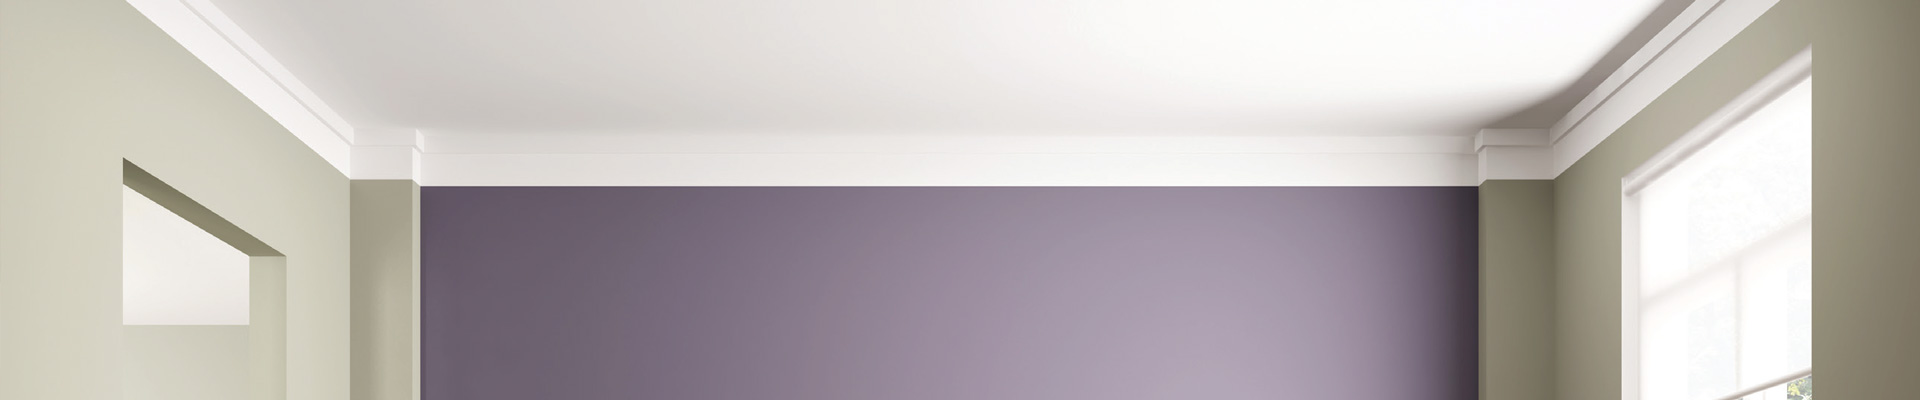 https://www.srpltd.co.nz/uploads/images/ceilings-banner.jpg